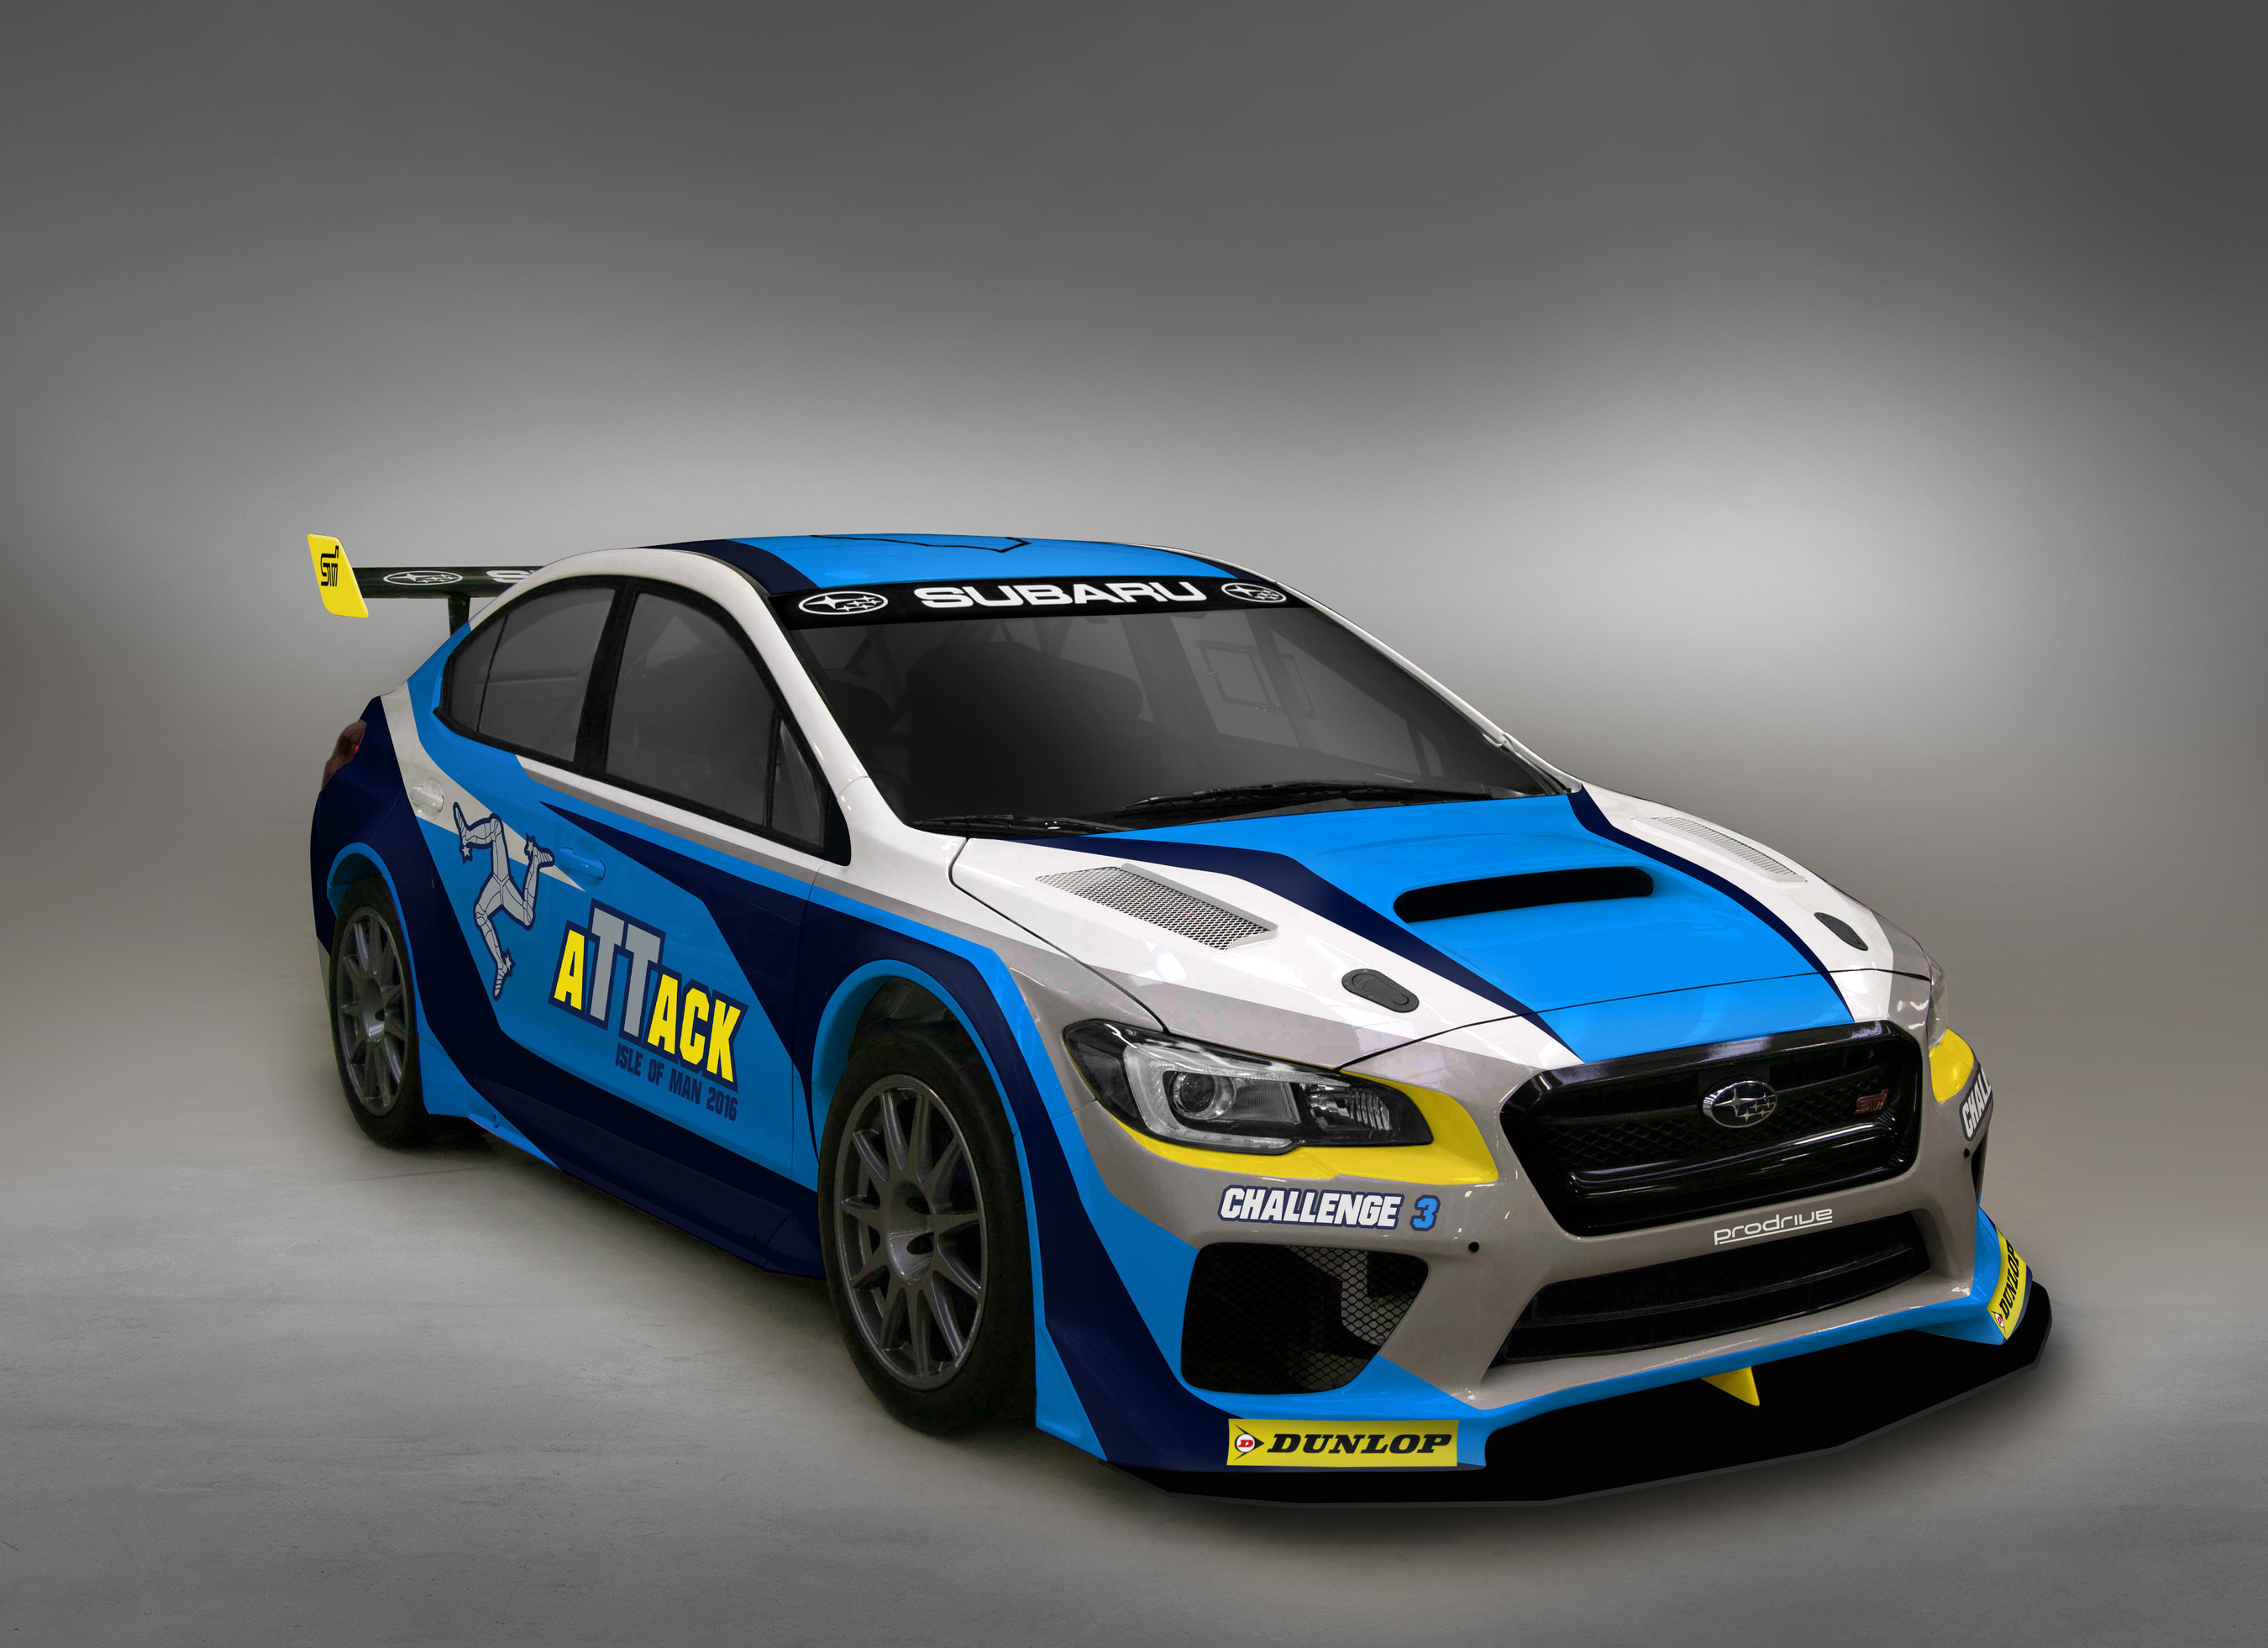 Subaru of America Inc Isle of Man Time Attack Car